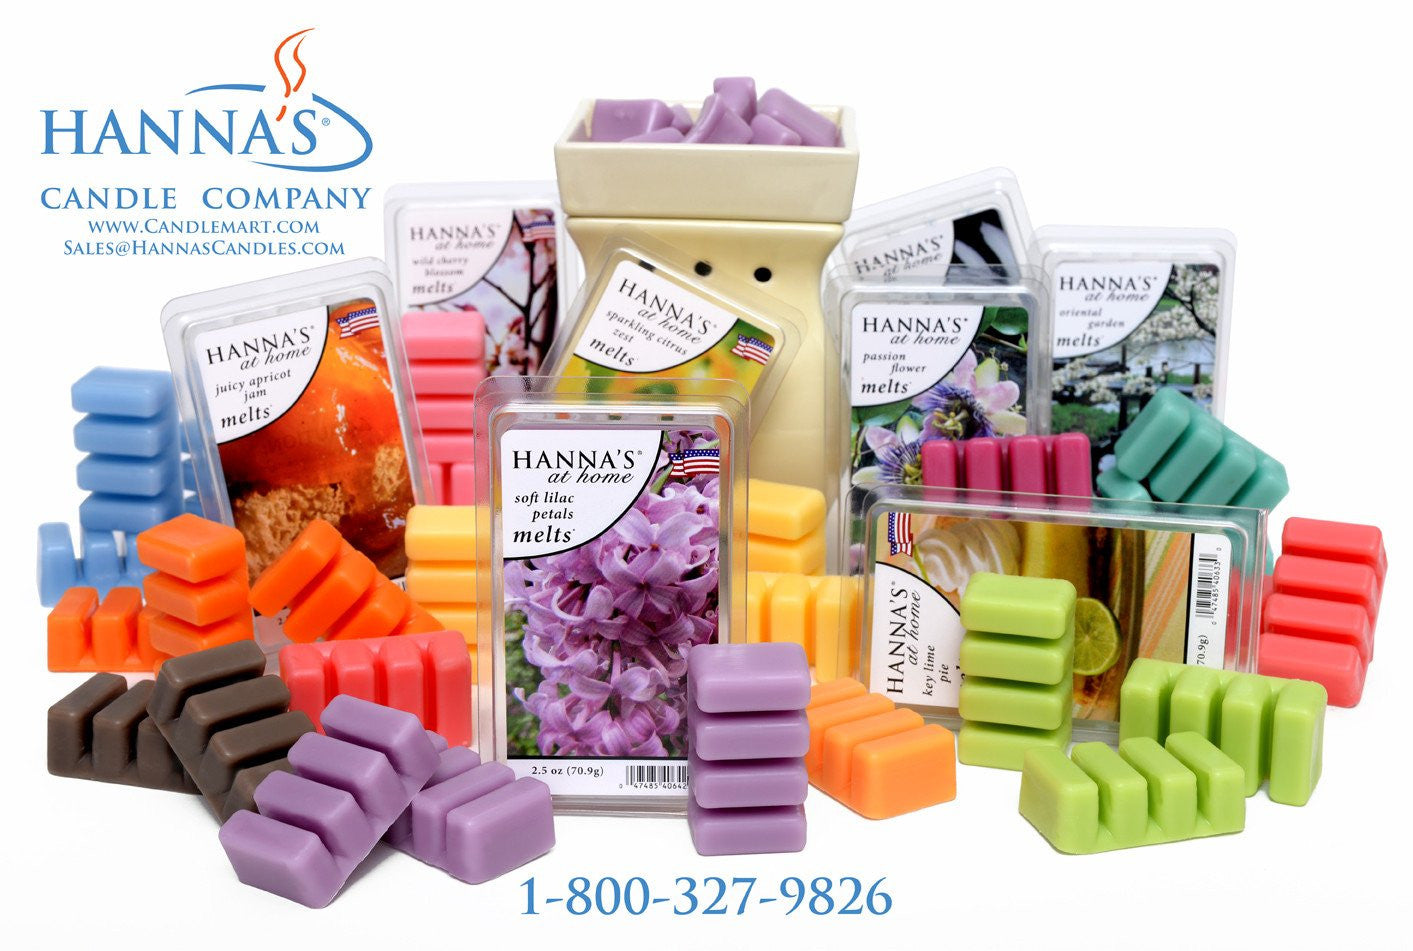 Cashmere Musk Scented Wax Melts - Candlemart.com